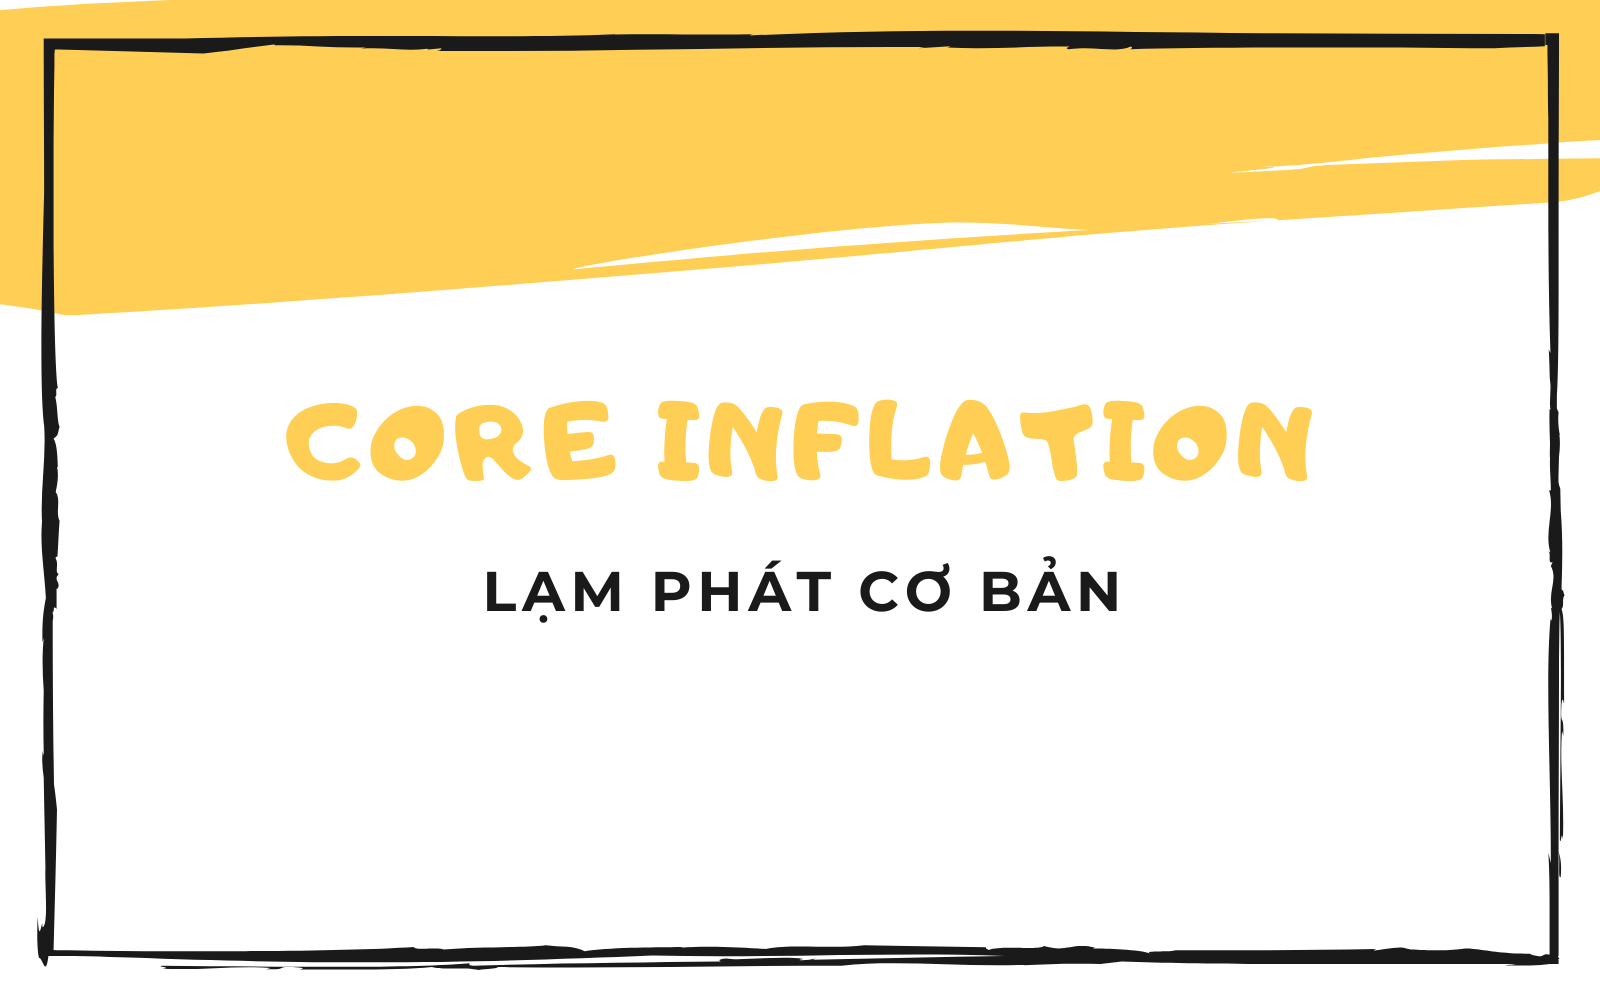 Core inflation